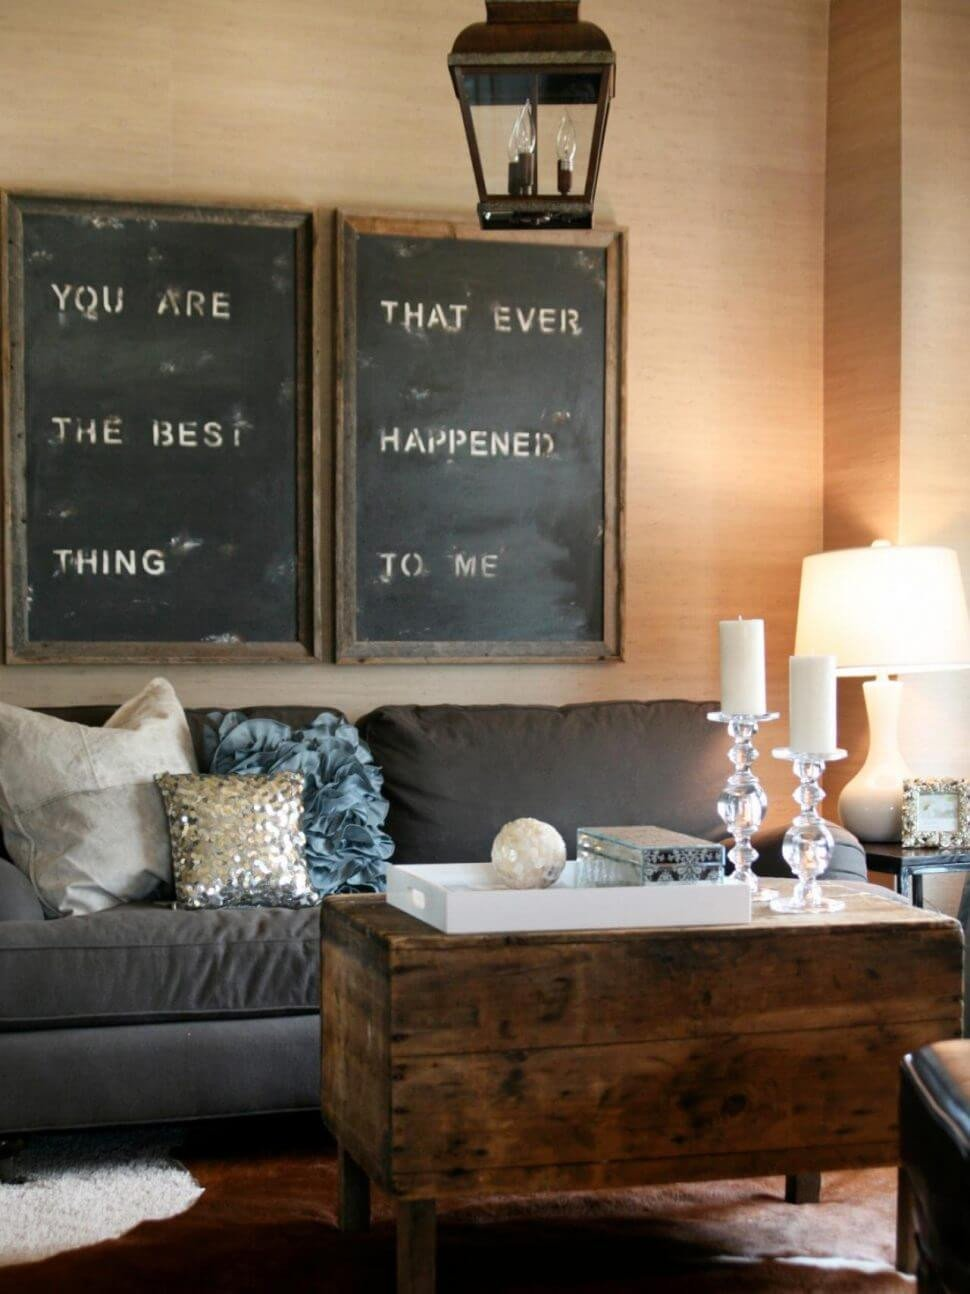 Wall Decor Ideas Living Room Beautiful 33 Best Rustic Living Room Wall Decor Ideas and Designs for 2019